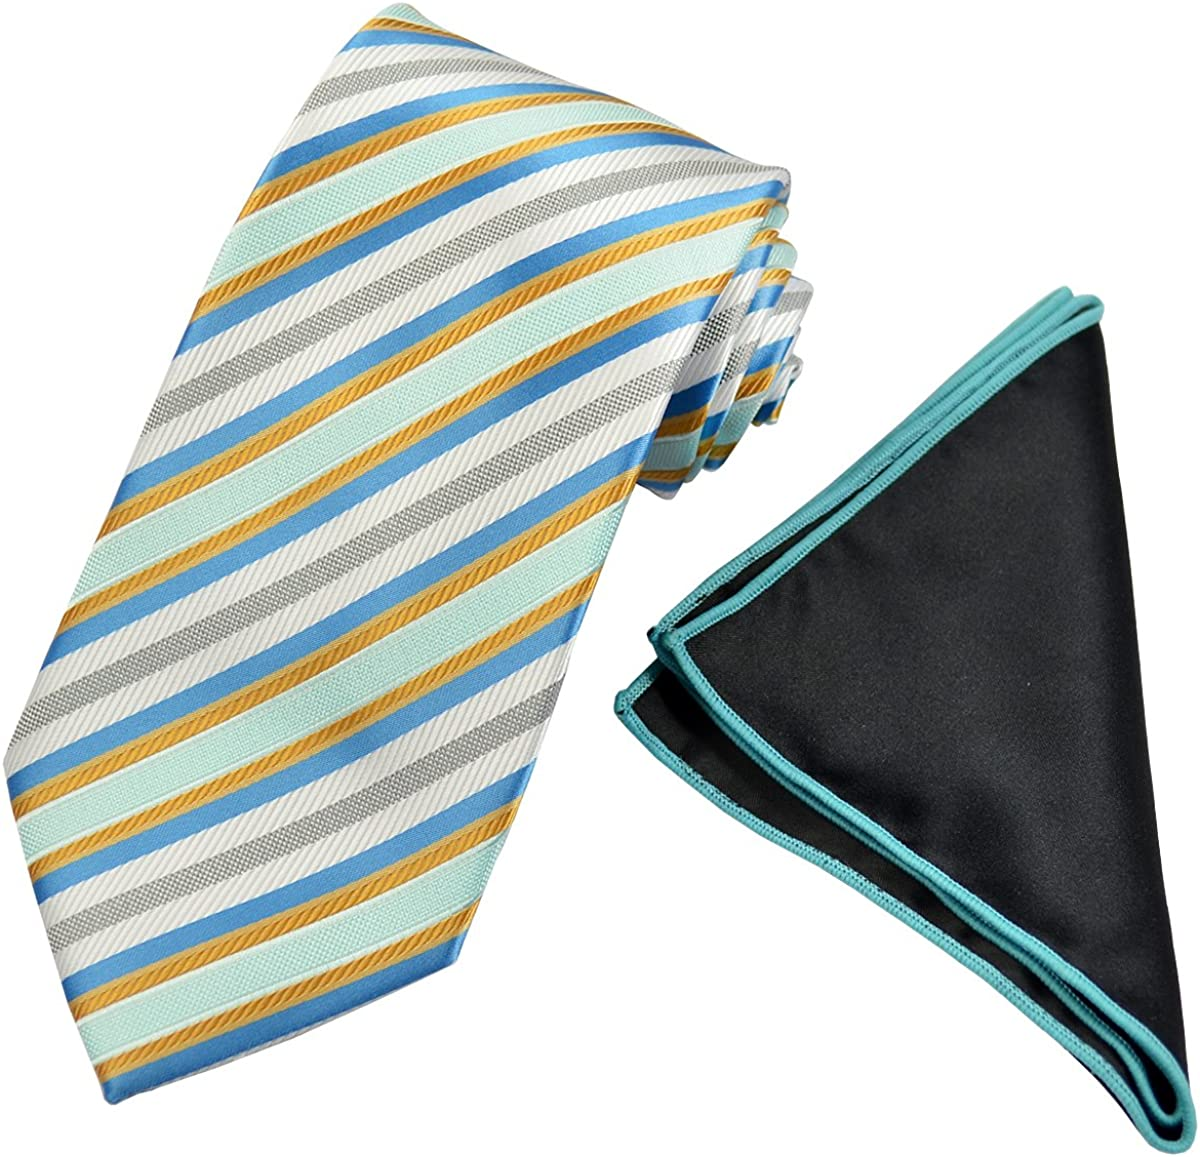 Turquoise Tie with Contrast Pocket Square Set